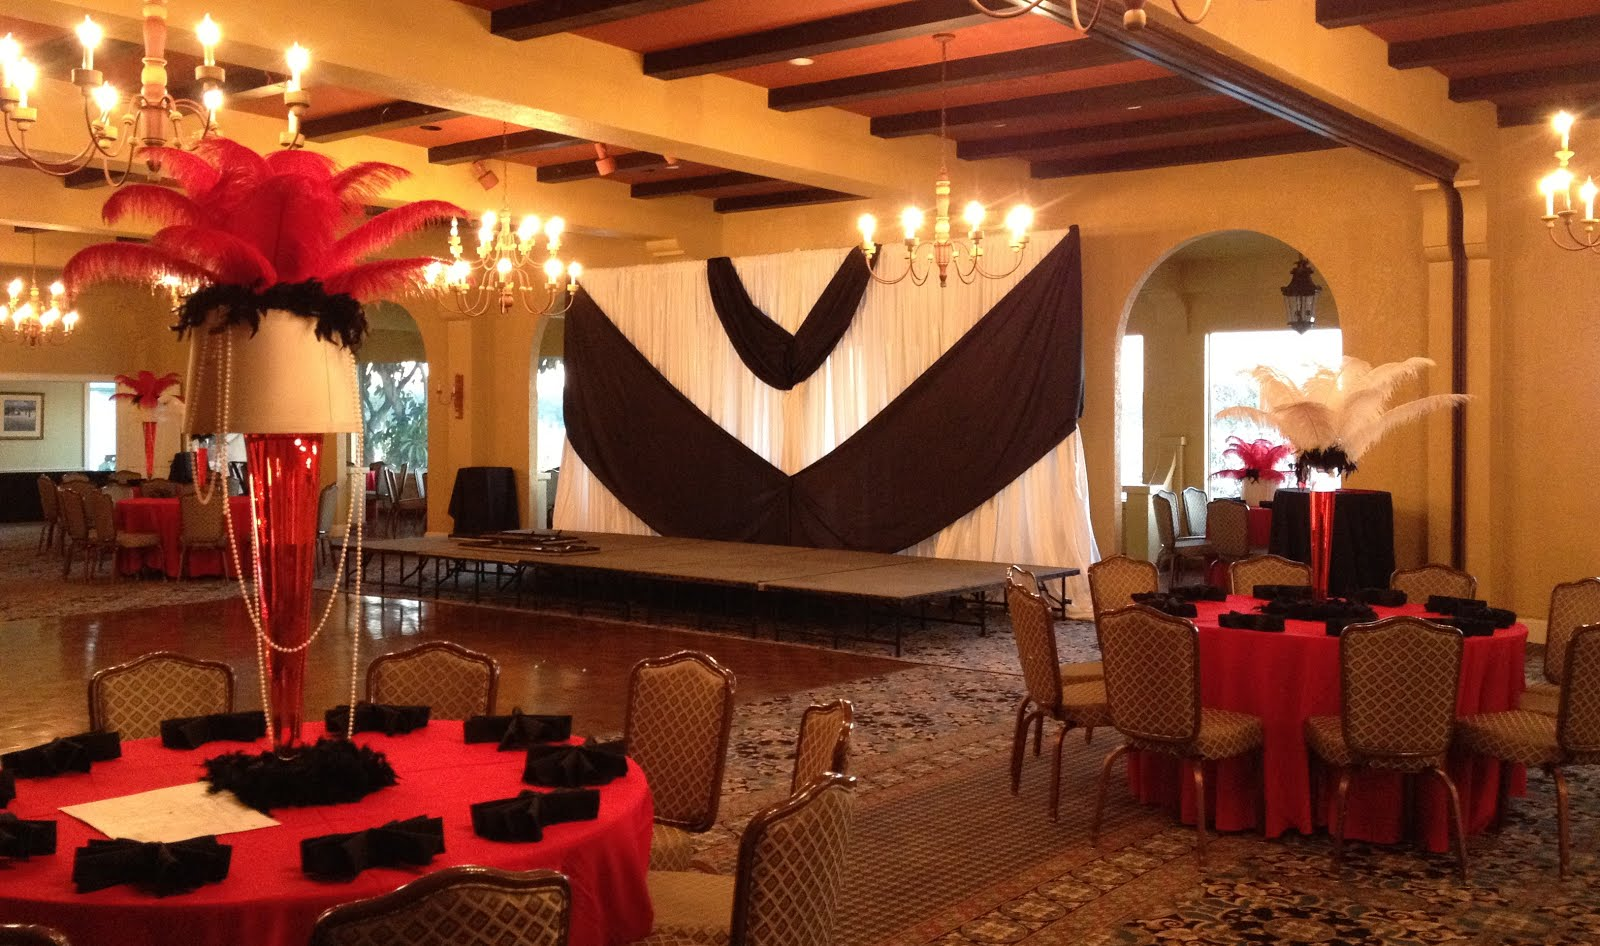 Party People Event Decorating Company Lakeland Yatch Club